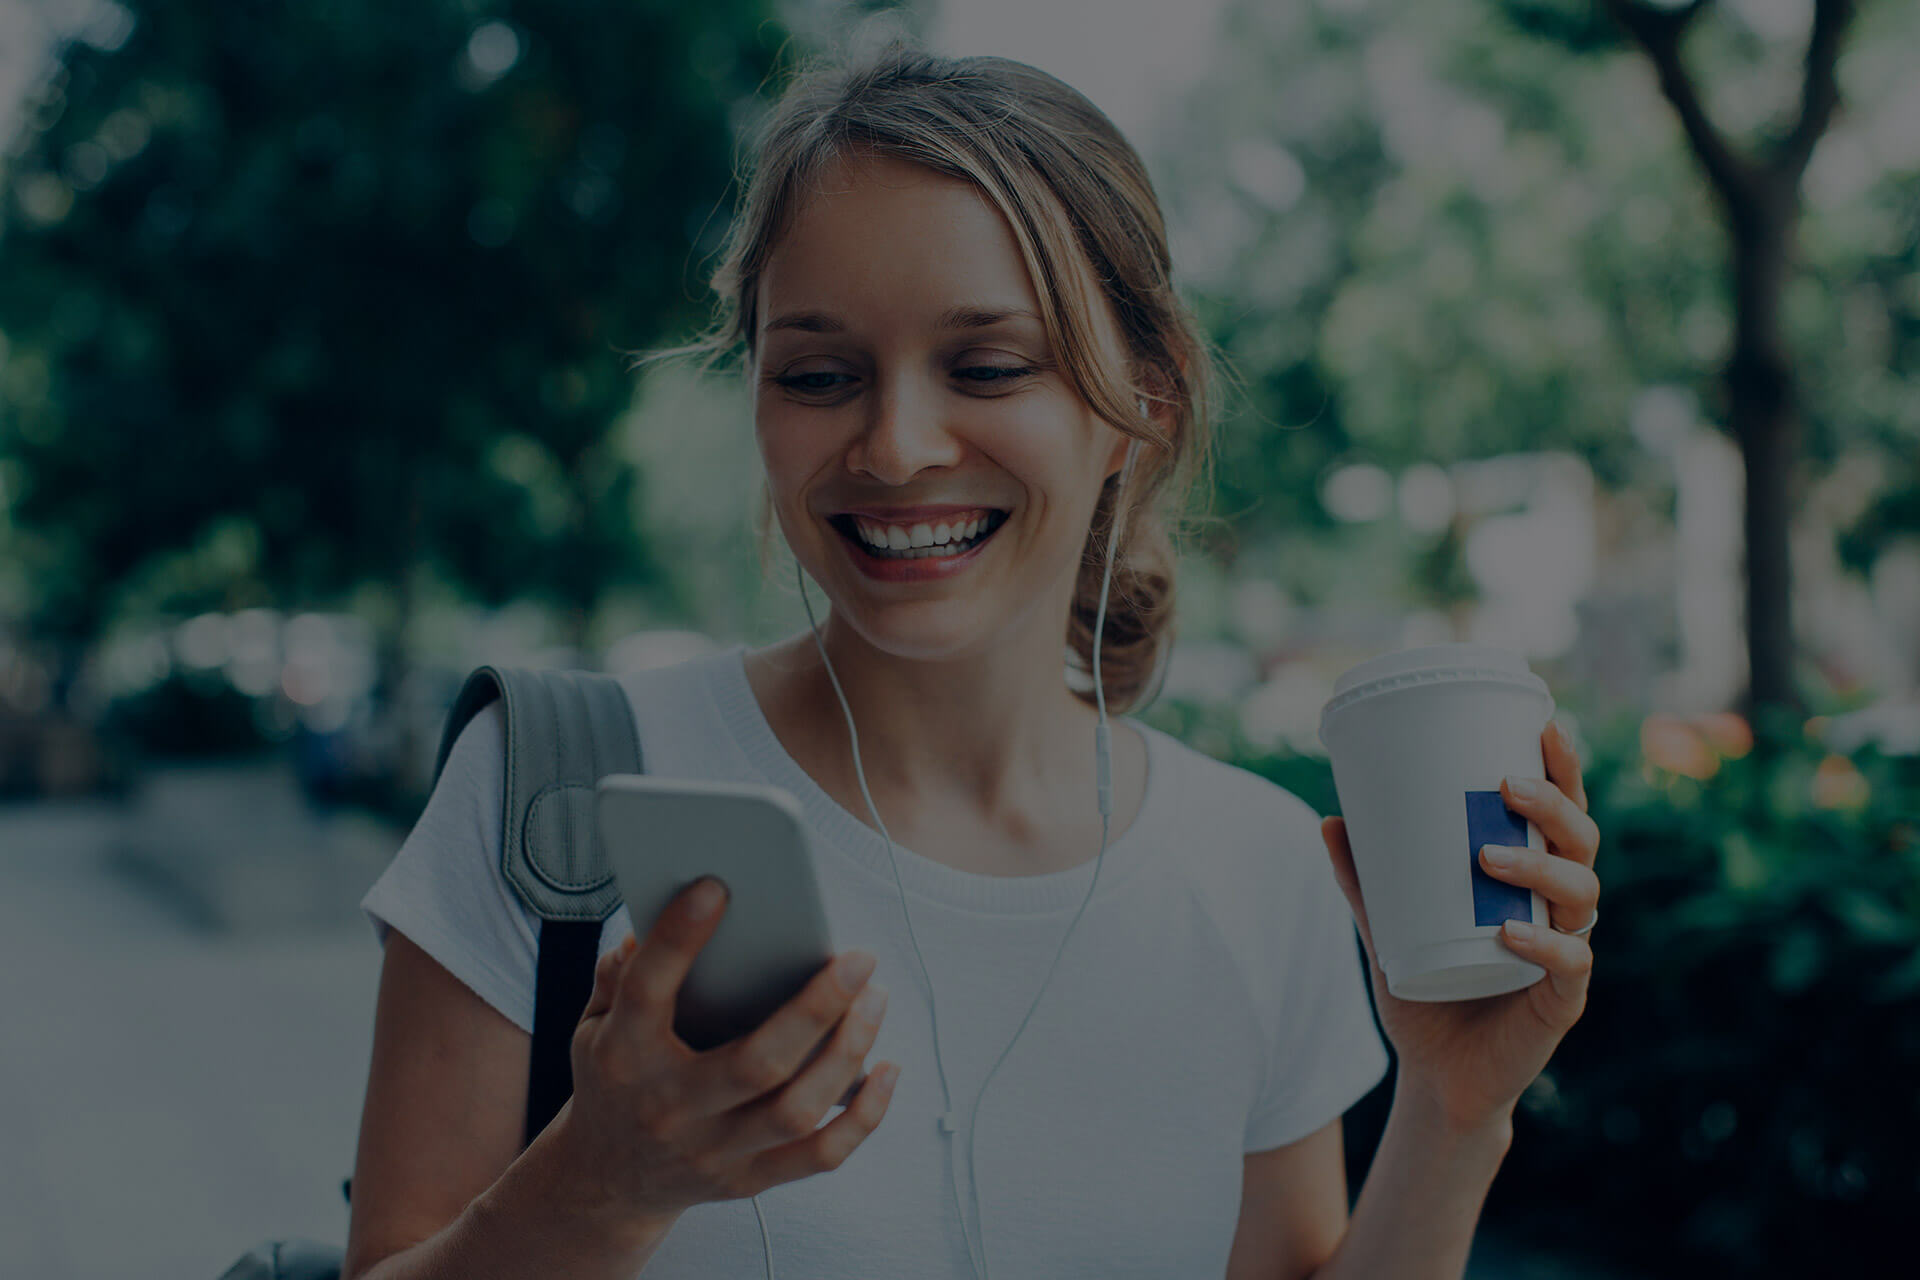 Smiling woman holding coffee and phone